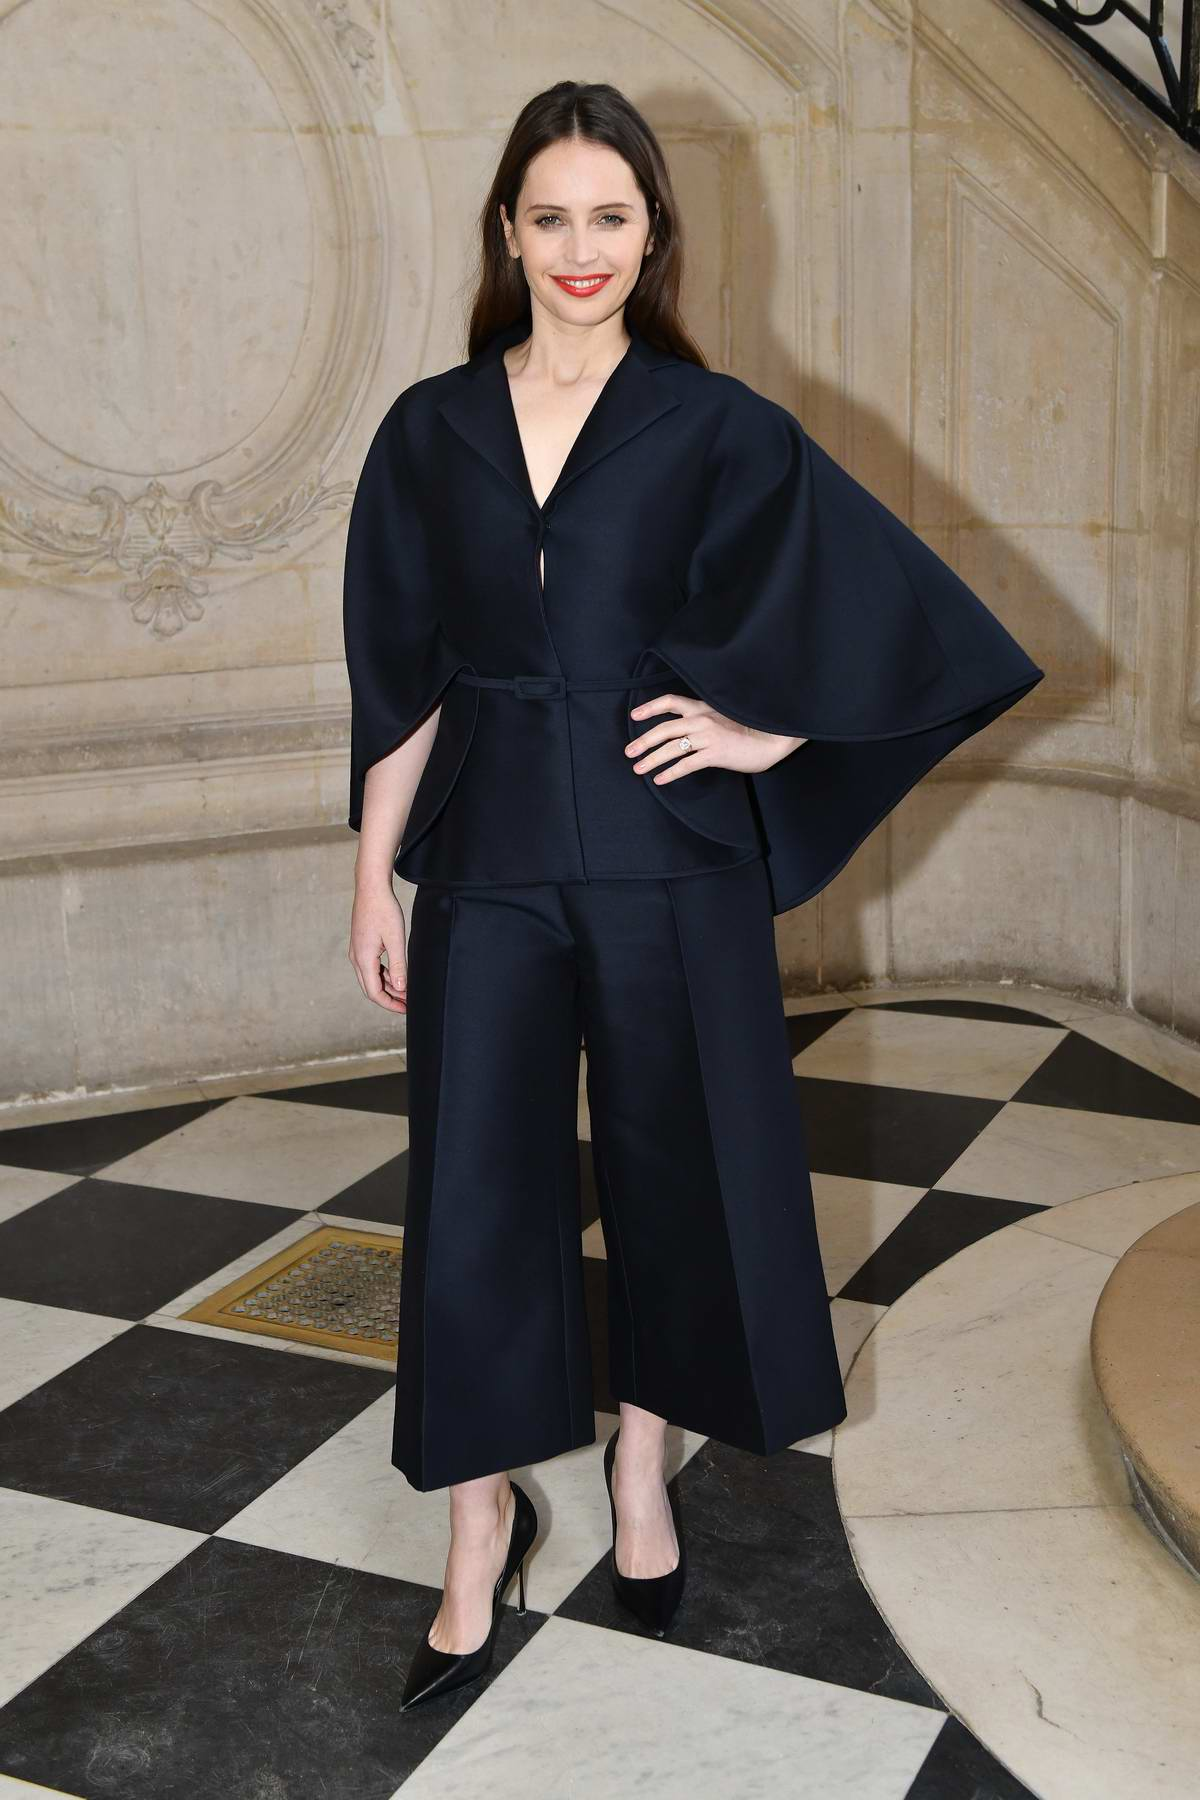 Felicity Jones attends the Christian Dior Haute Couture Spring/Summer 2019 Show during Paris Fashion Week in Paris, France